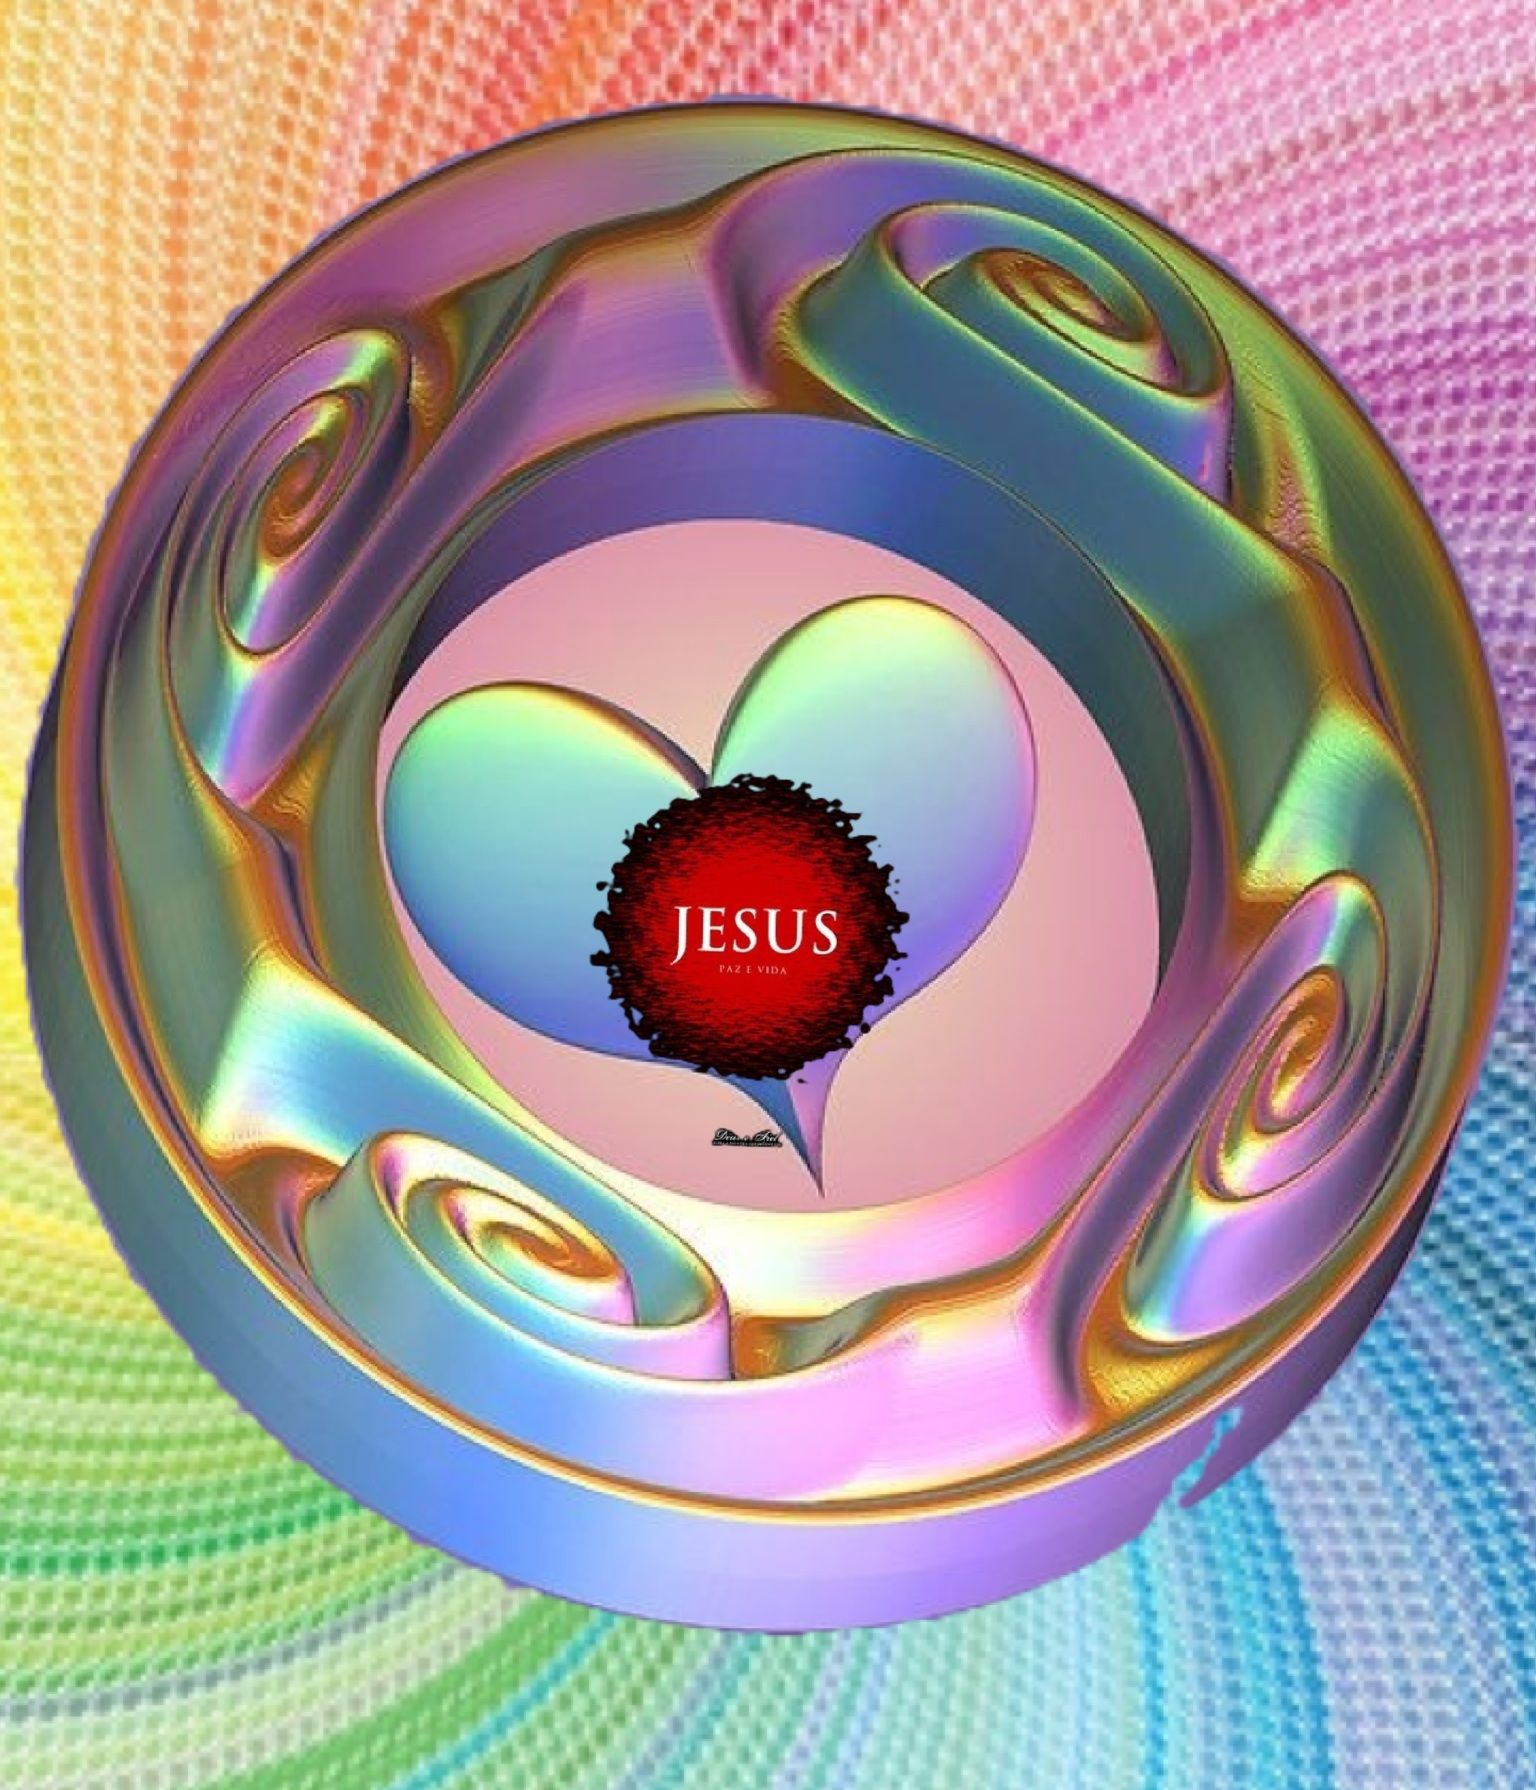 Jesus - made by Dave L Walli with Bazaart #collage